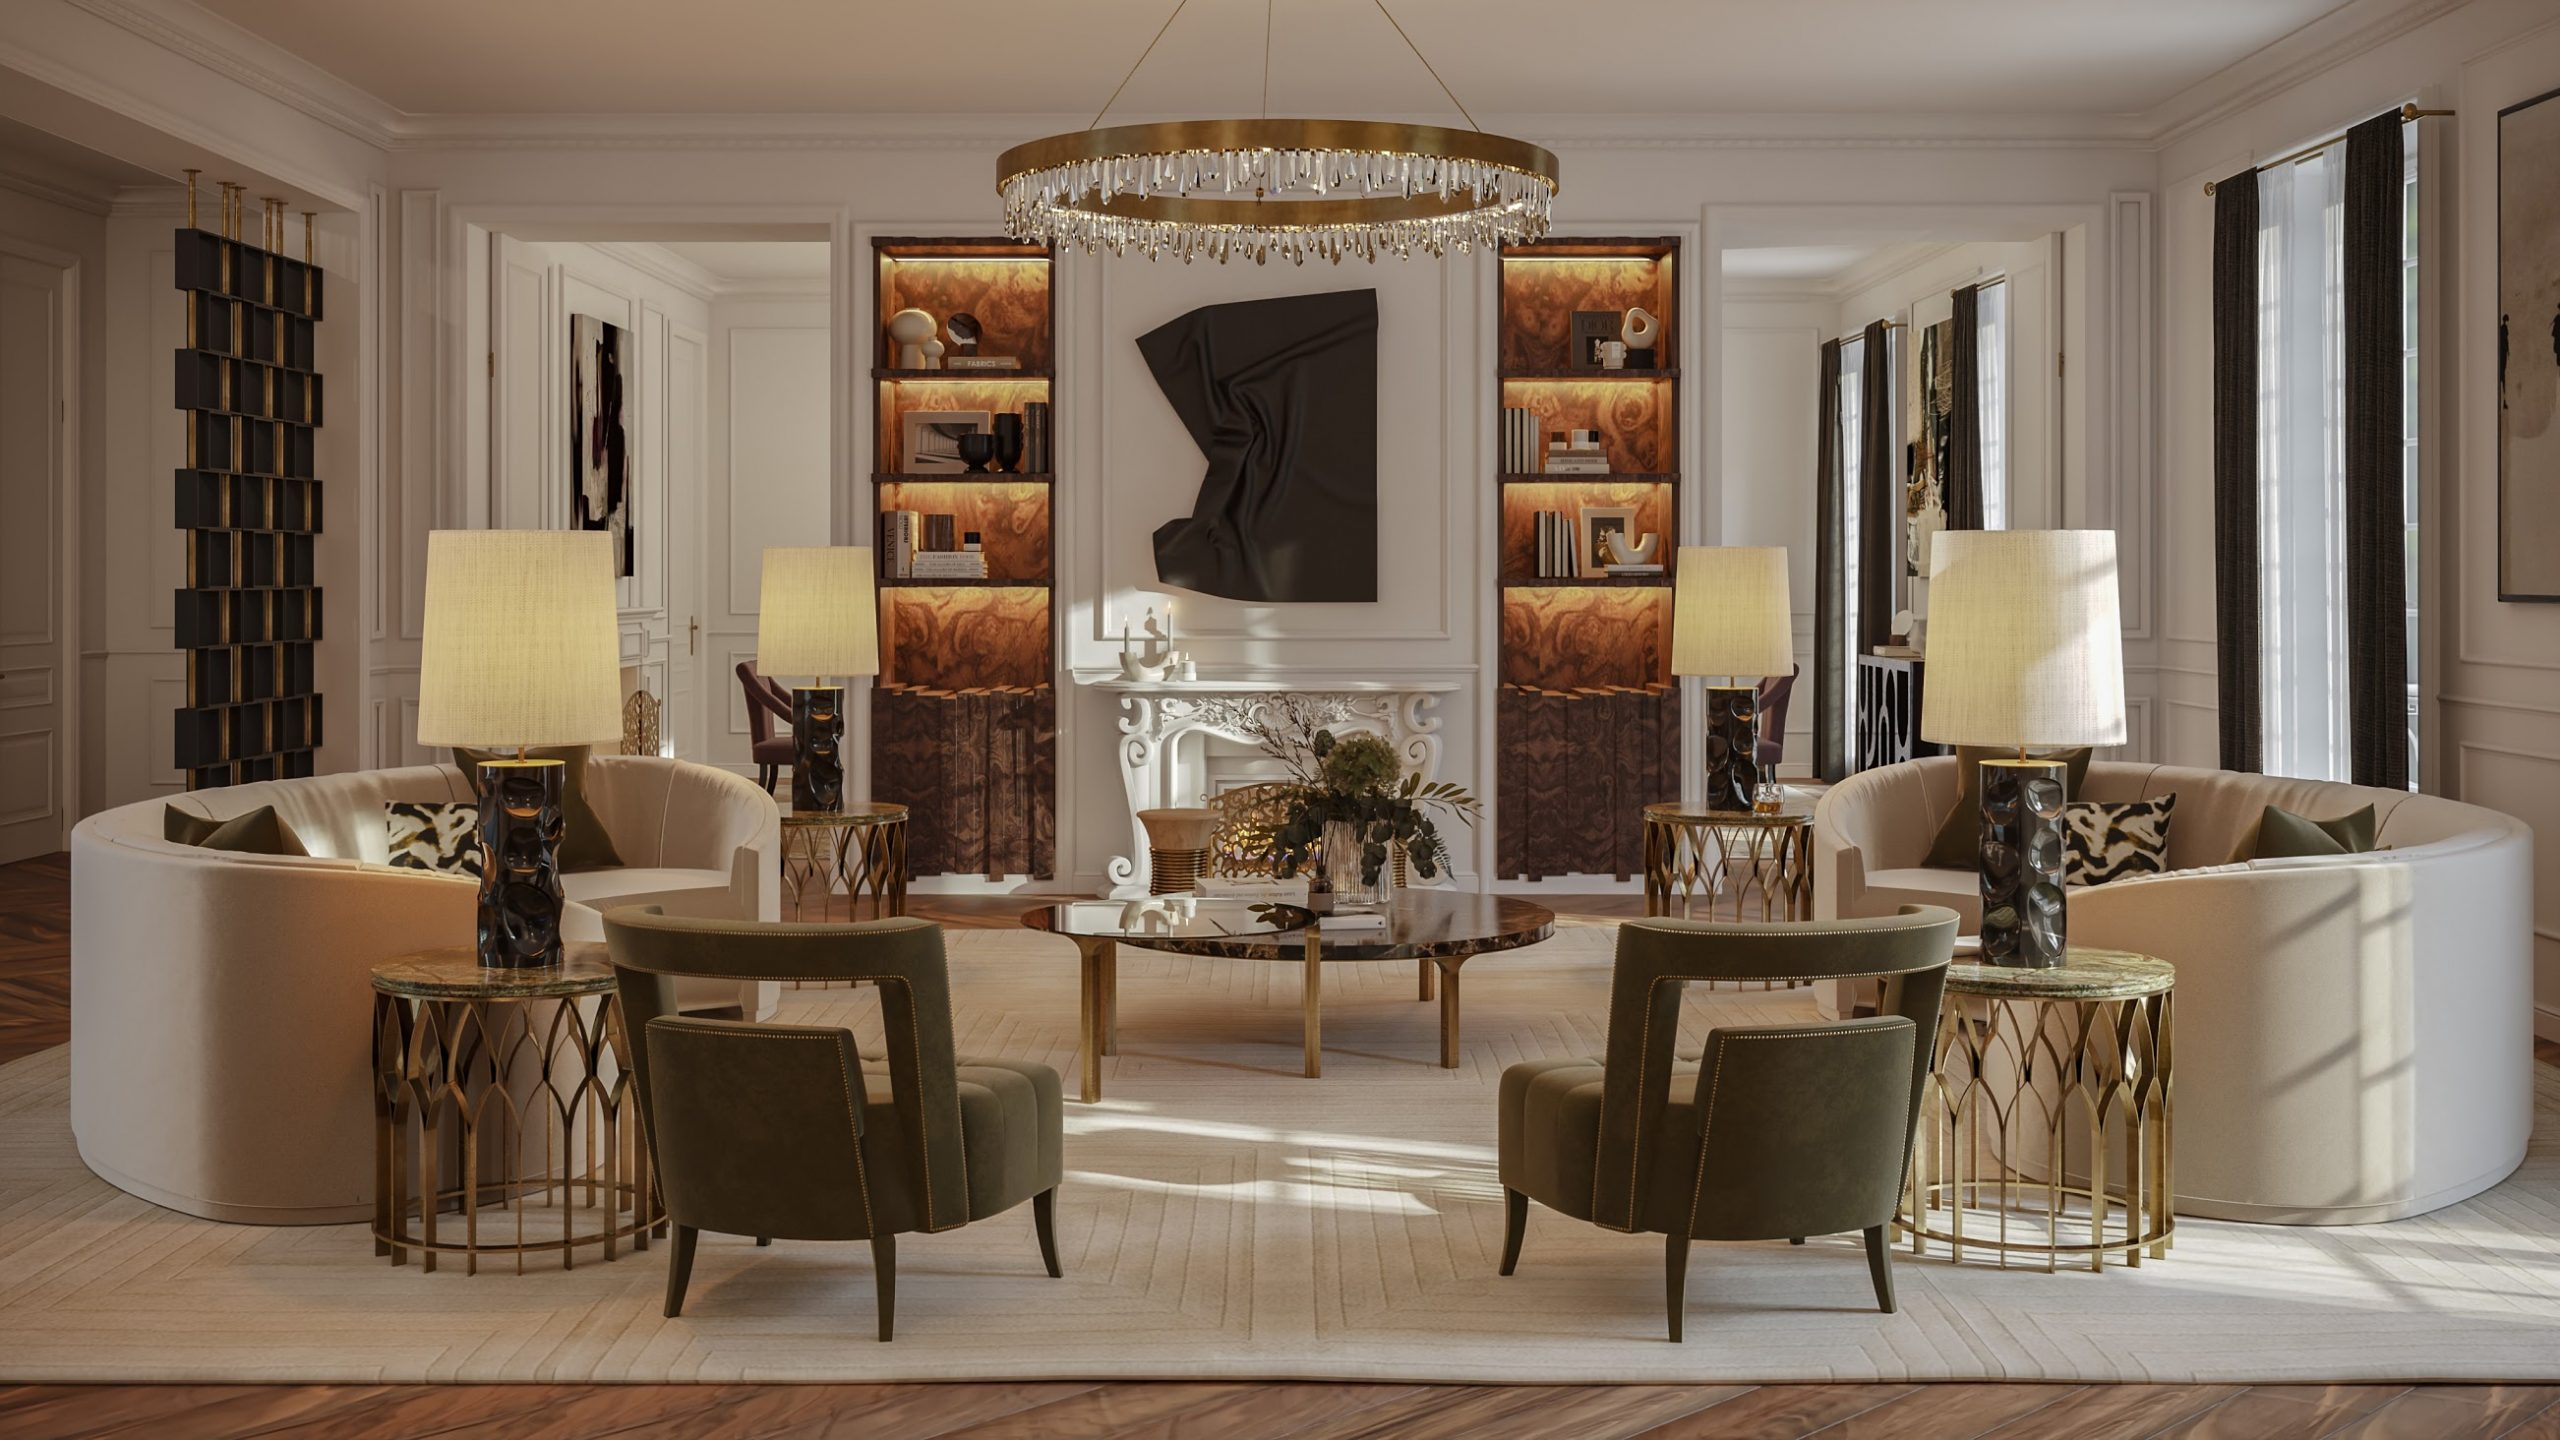 """Contemporary Classic Living Room: Uncover The Oasis Of The """"Éternel"""" Apartment contemporary classic living room Contemporary Classic Living Room: Uncover The Oasis Of The """"Éternel"""" Apartment Contemporary Classic Living Room Uncover The Oasis Of The E  ternel Apartment 2 scaled"""